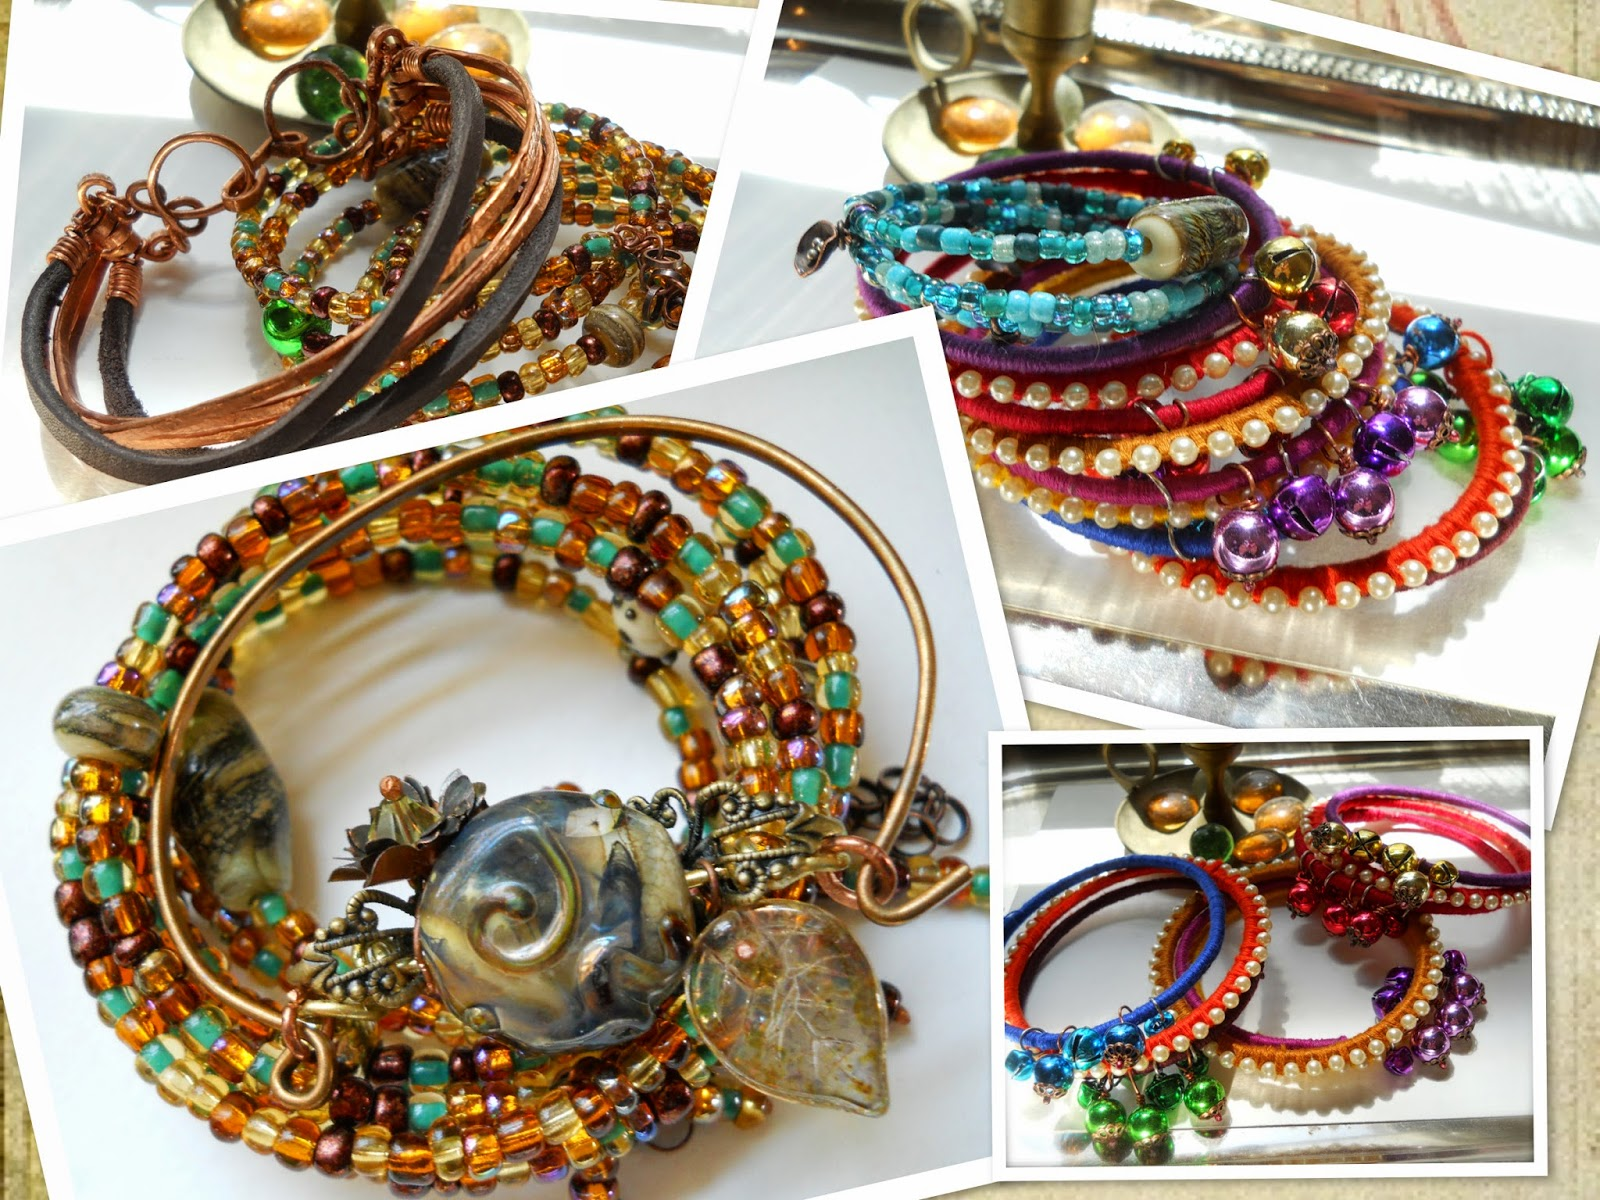 memory wire bracelets/anklets, colorful bangles, copper & leather cuff